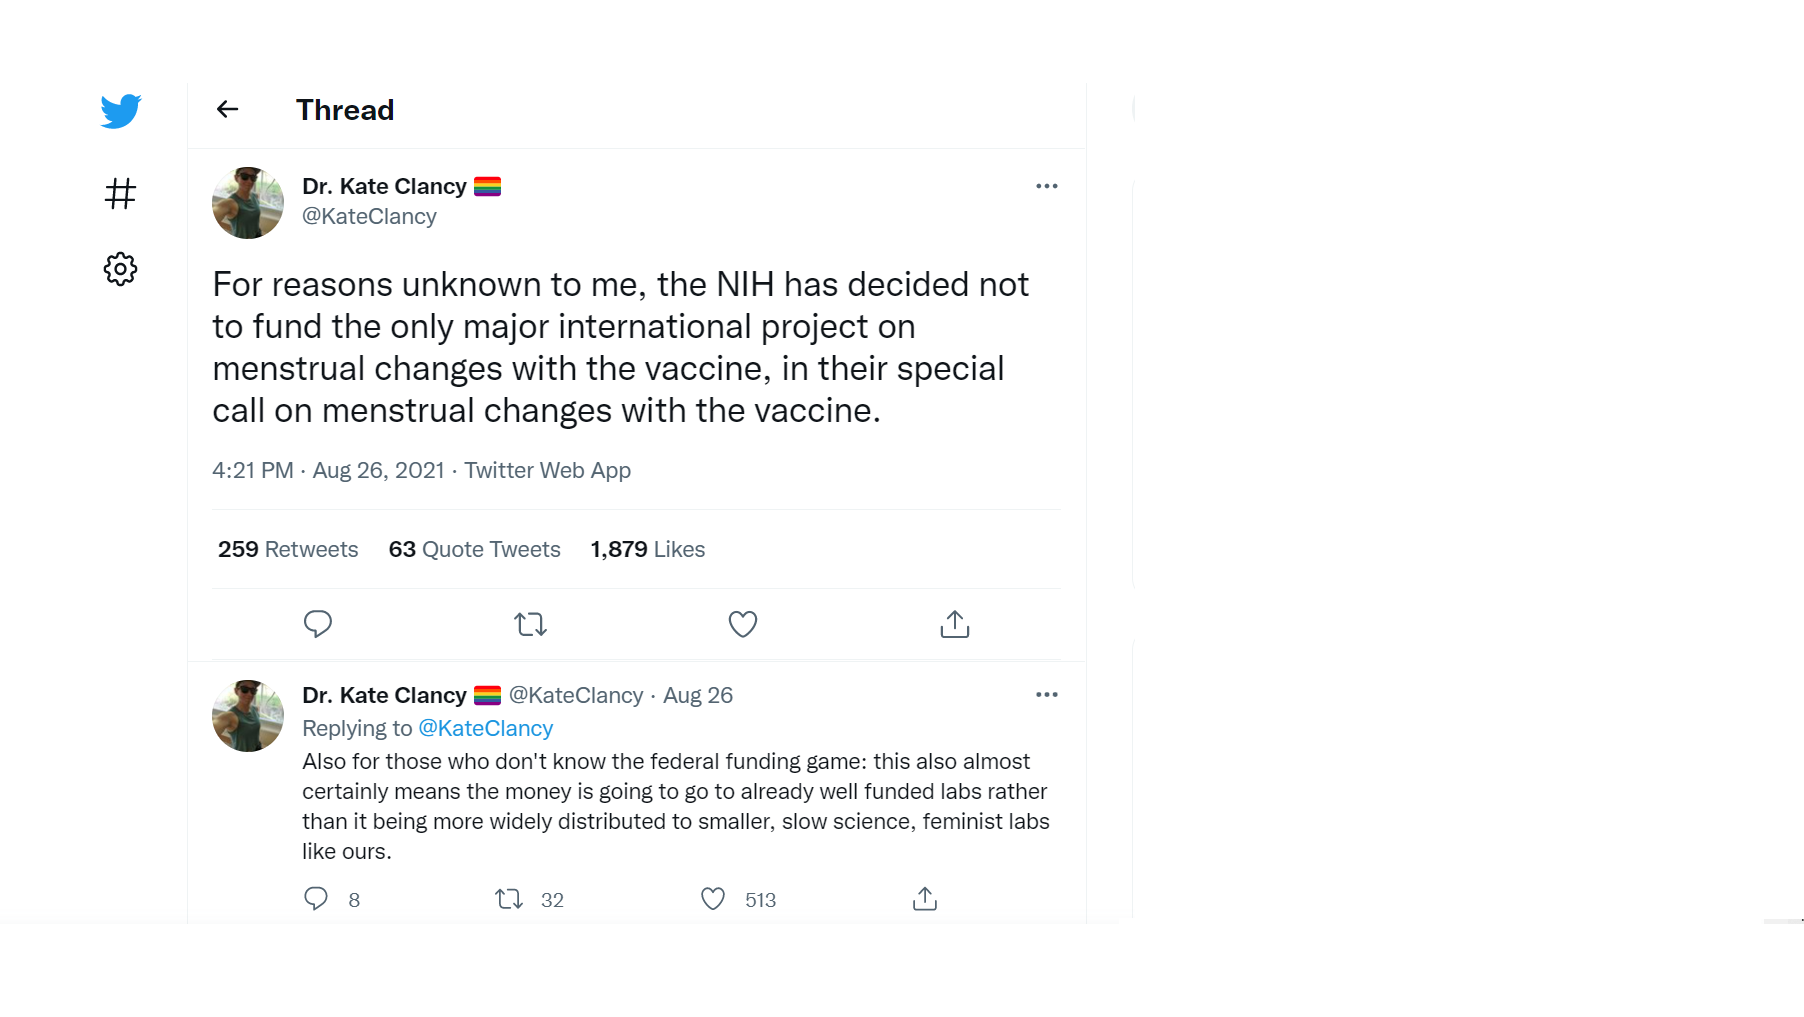 A Tweet indicating a researchers frustration with not getting funding for a study